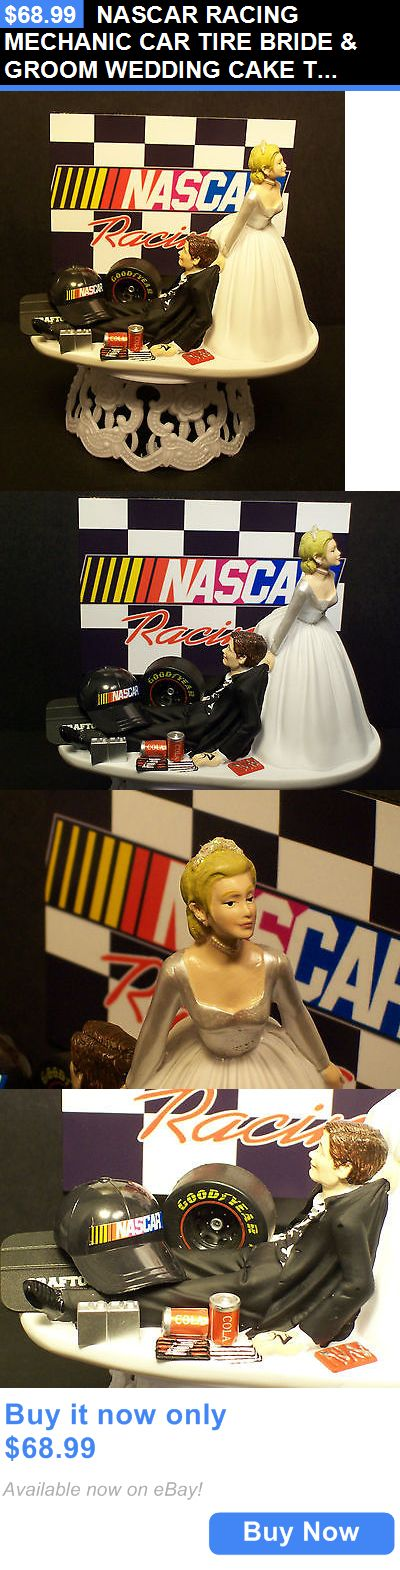 Wedding Cakes Toppers: Nascar Racing Mechanic Car Tire Bride And Groom Wedding Cake Topper Sports Funny BUY IT NOW ONLY: $68.99